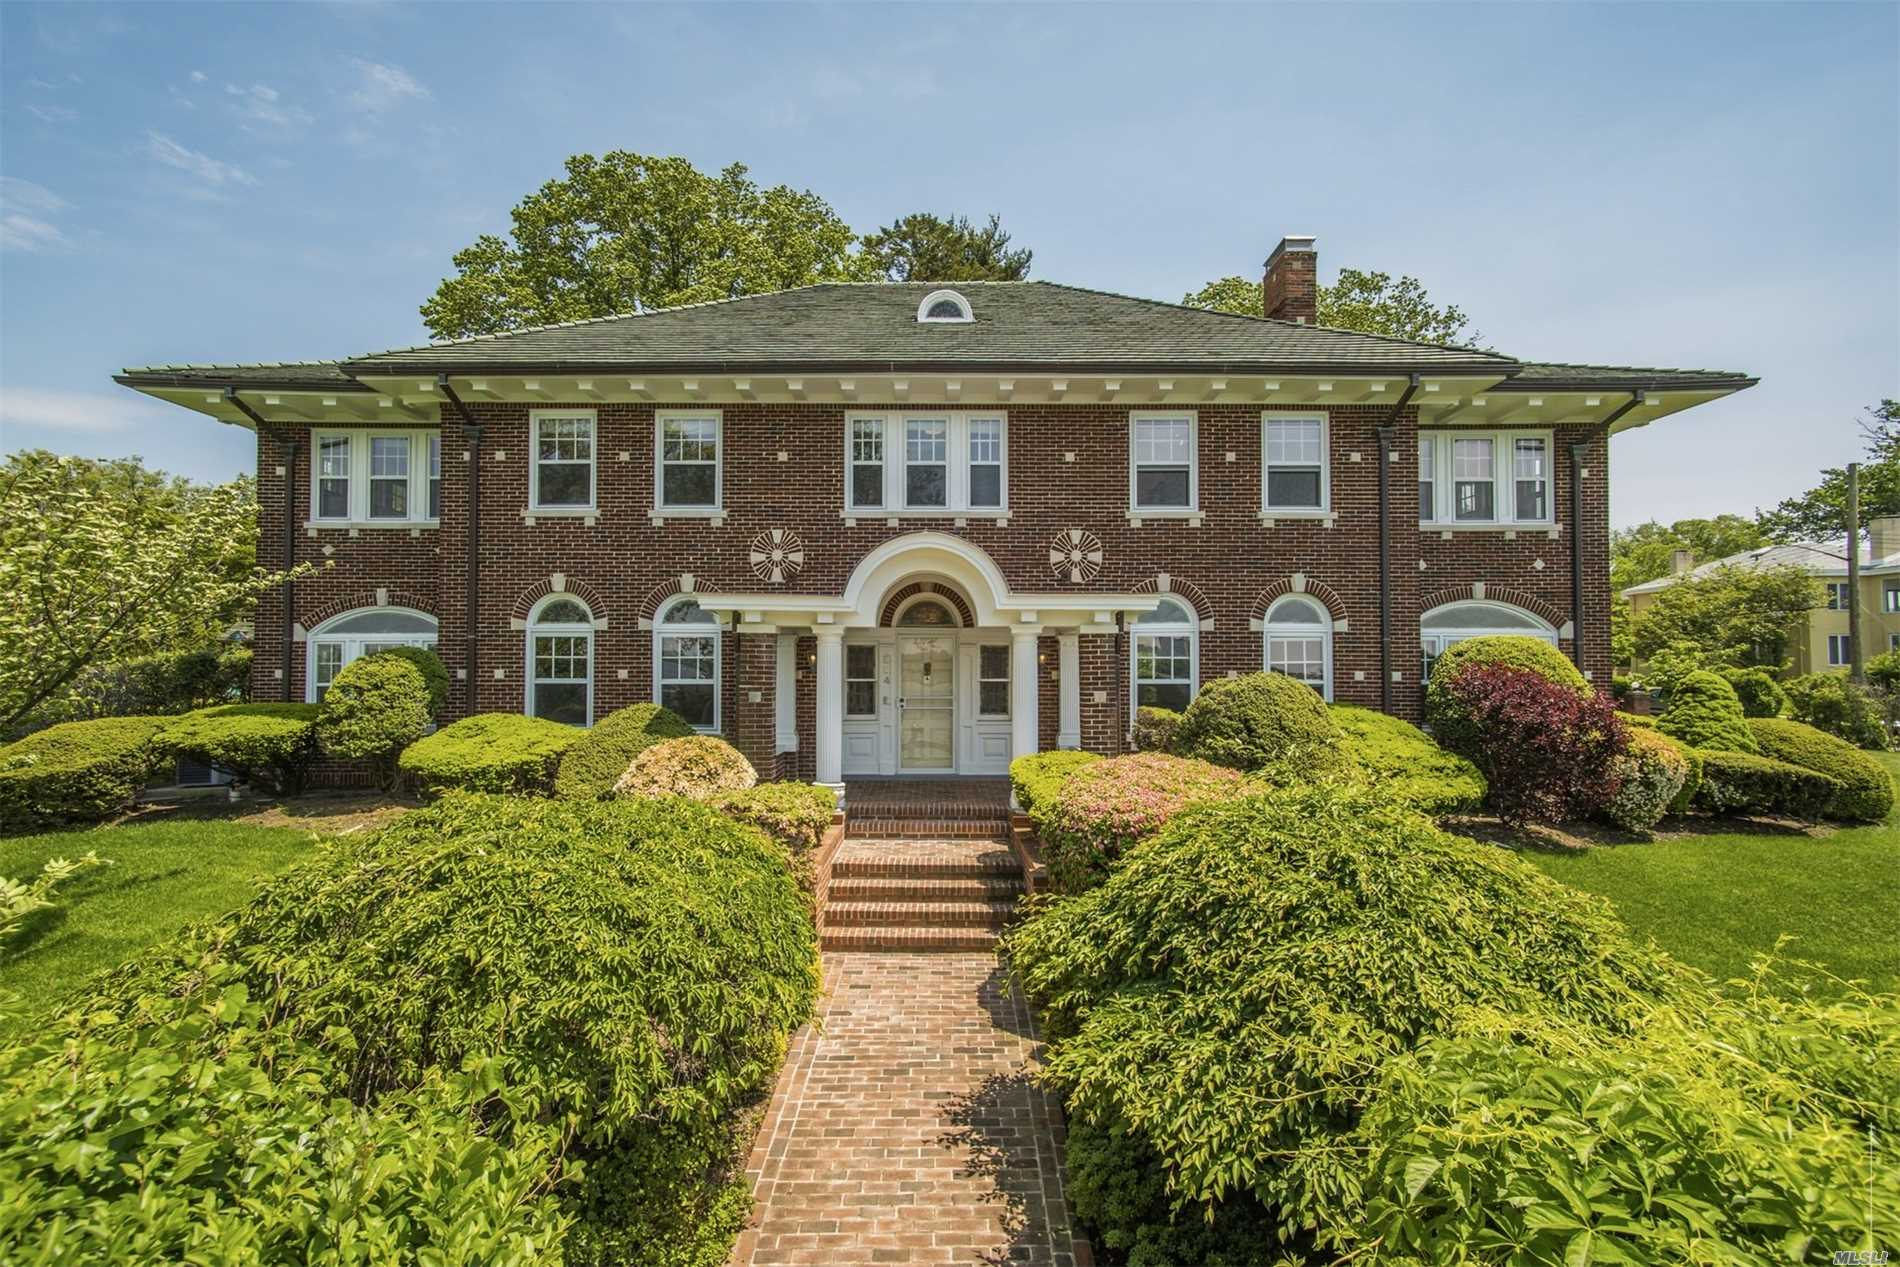 This waterfront estate in Douglas Manor evokes a sense of grandeur. Perfect for entertainment and raising a family. Panoramic water views of the Bay with walking steps of a dock for swimming or taking off on a sailboat. Excellent instructions for learning to sail for youngsters. One of a kind neighborhood in Queens planned in the early 1900's to give a a feeling of country living and all 28 min. to NYC.